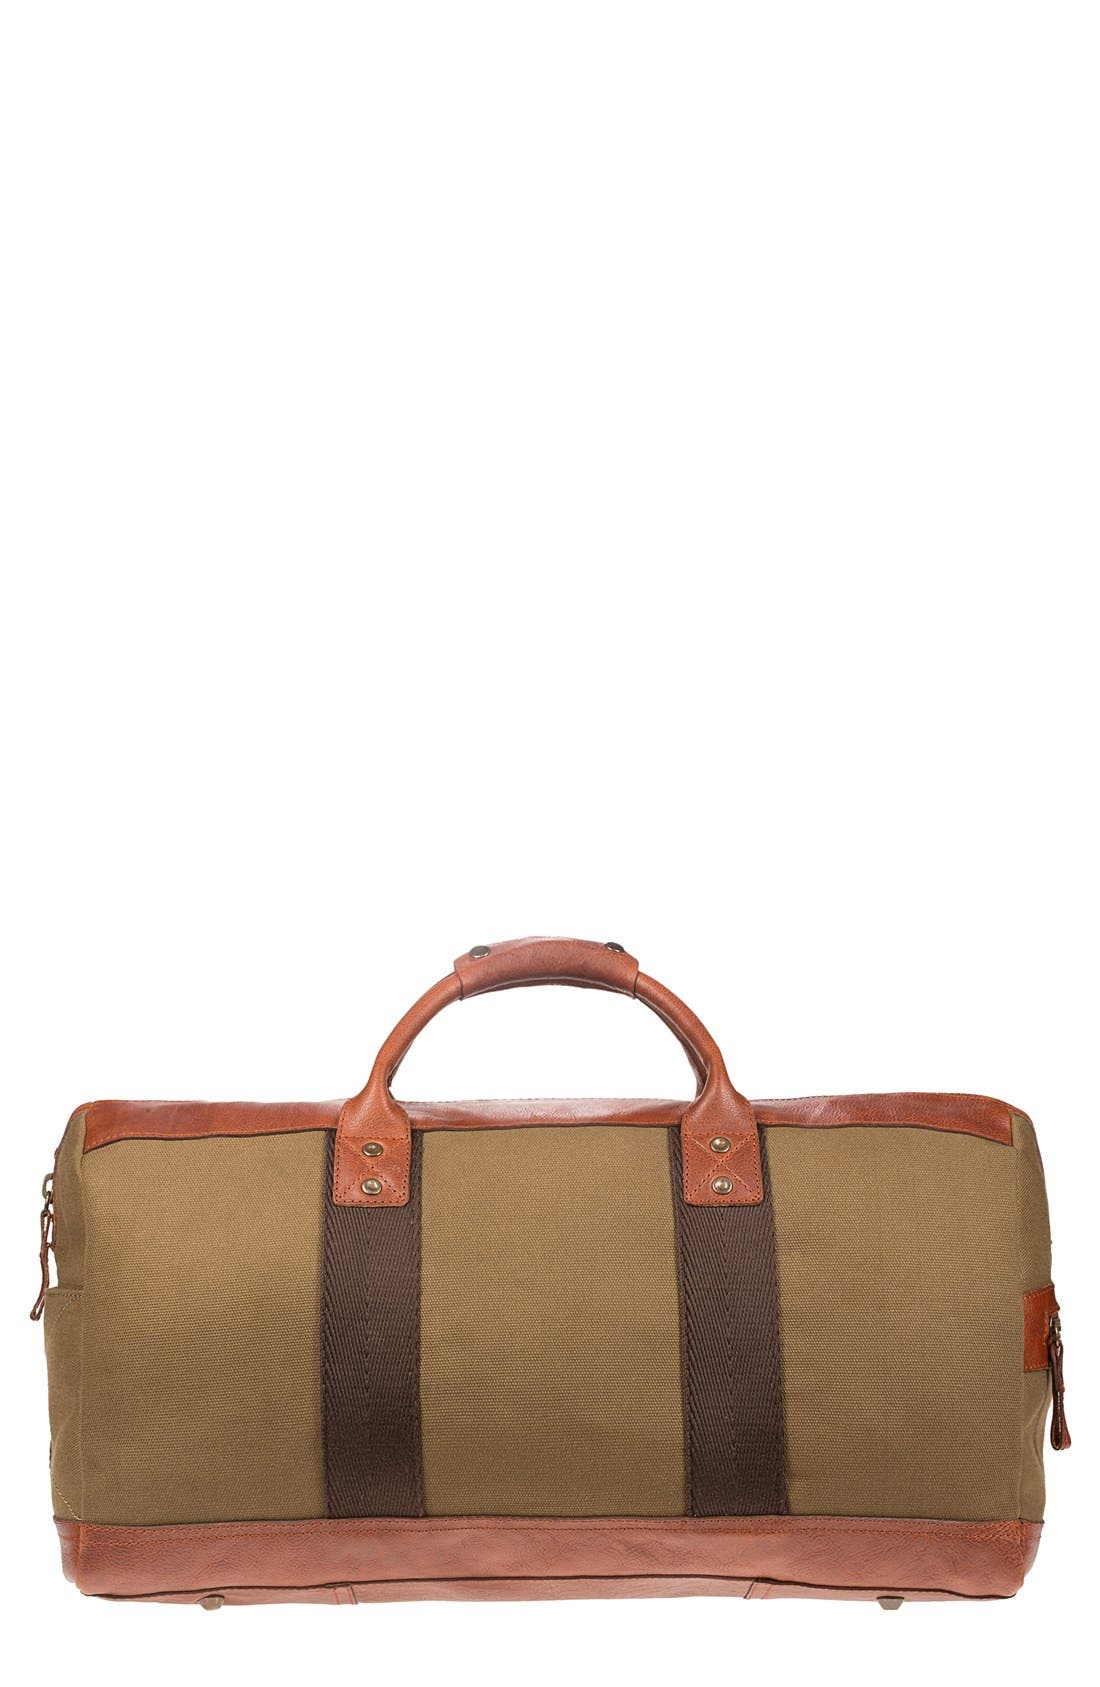 Will Leather Goods 'Signature' Duffel Bag